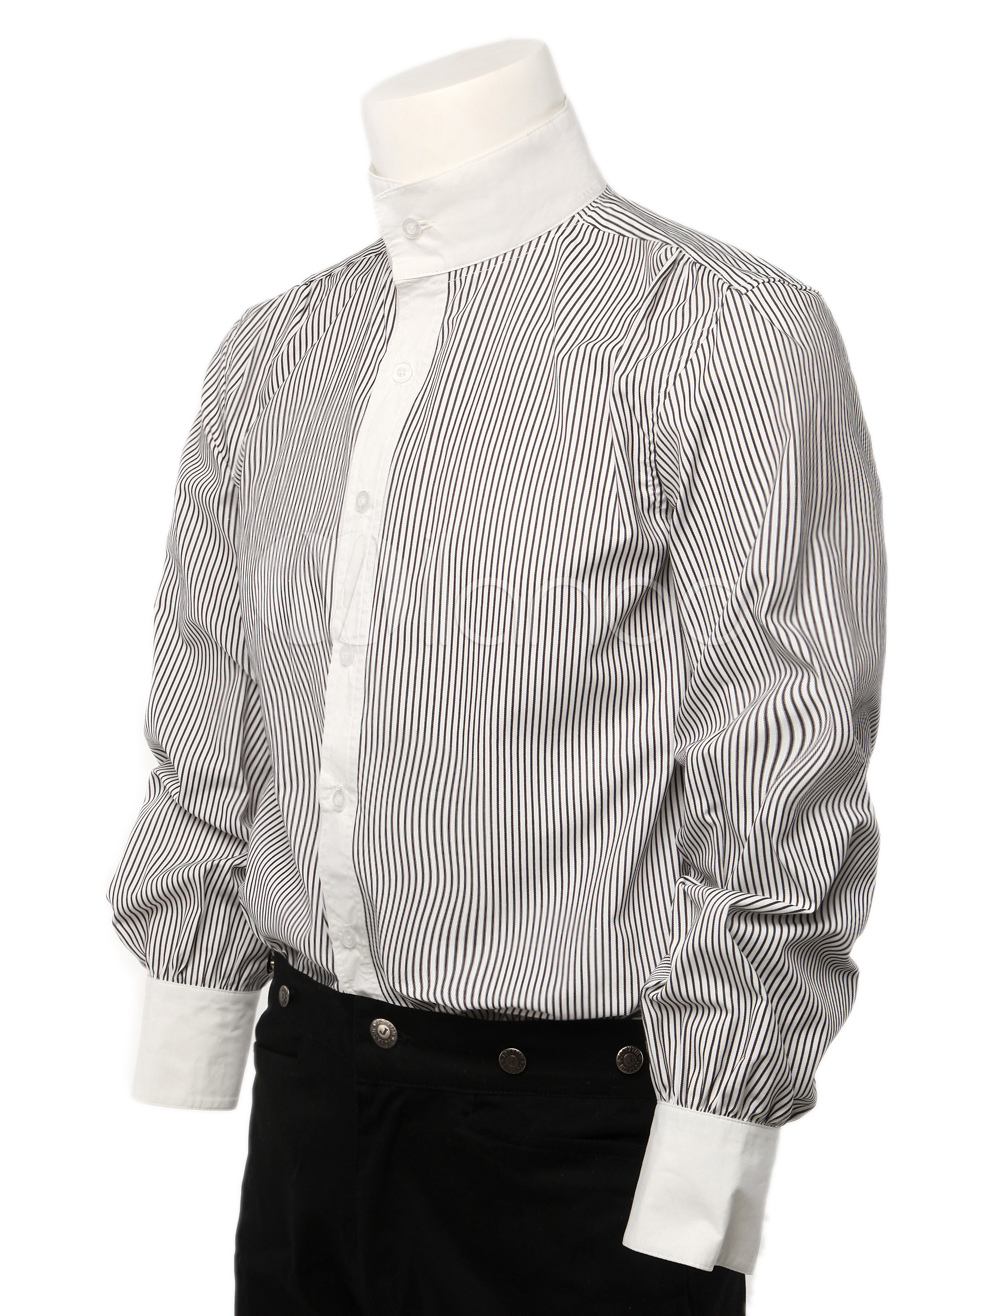 Gray Stripe Pure Cotton Mens Modern Steampunk Shirts $40.99 AT vintagedancer.com